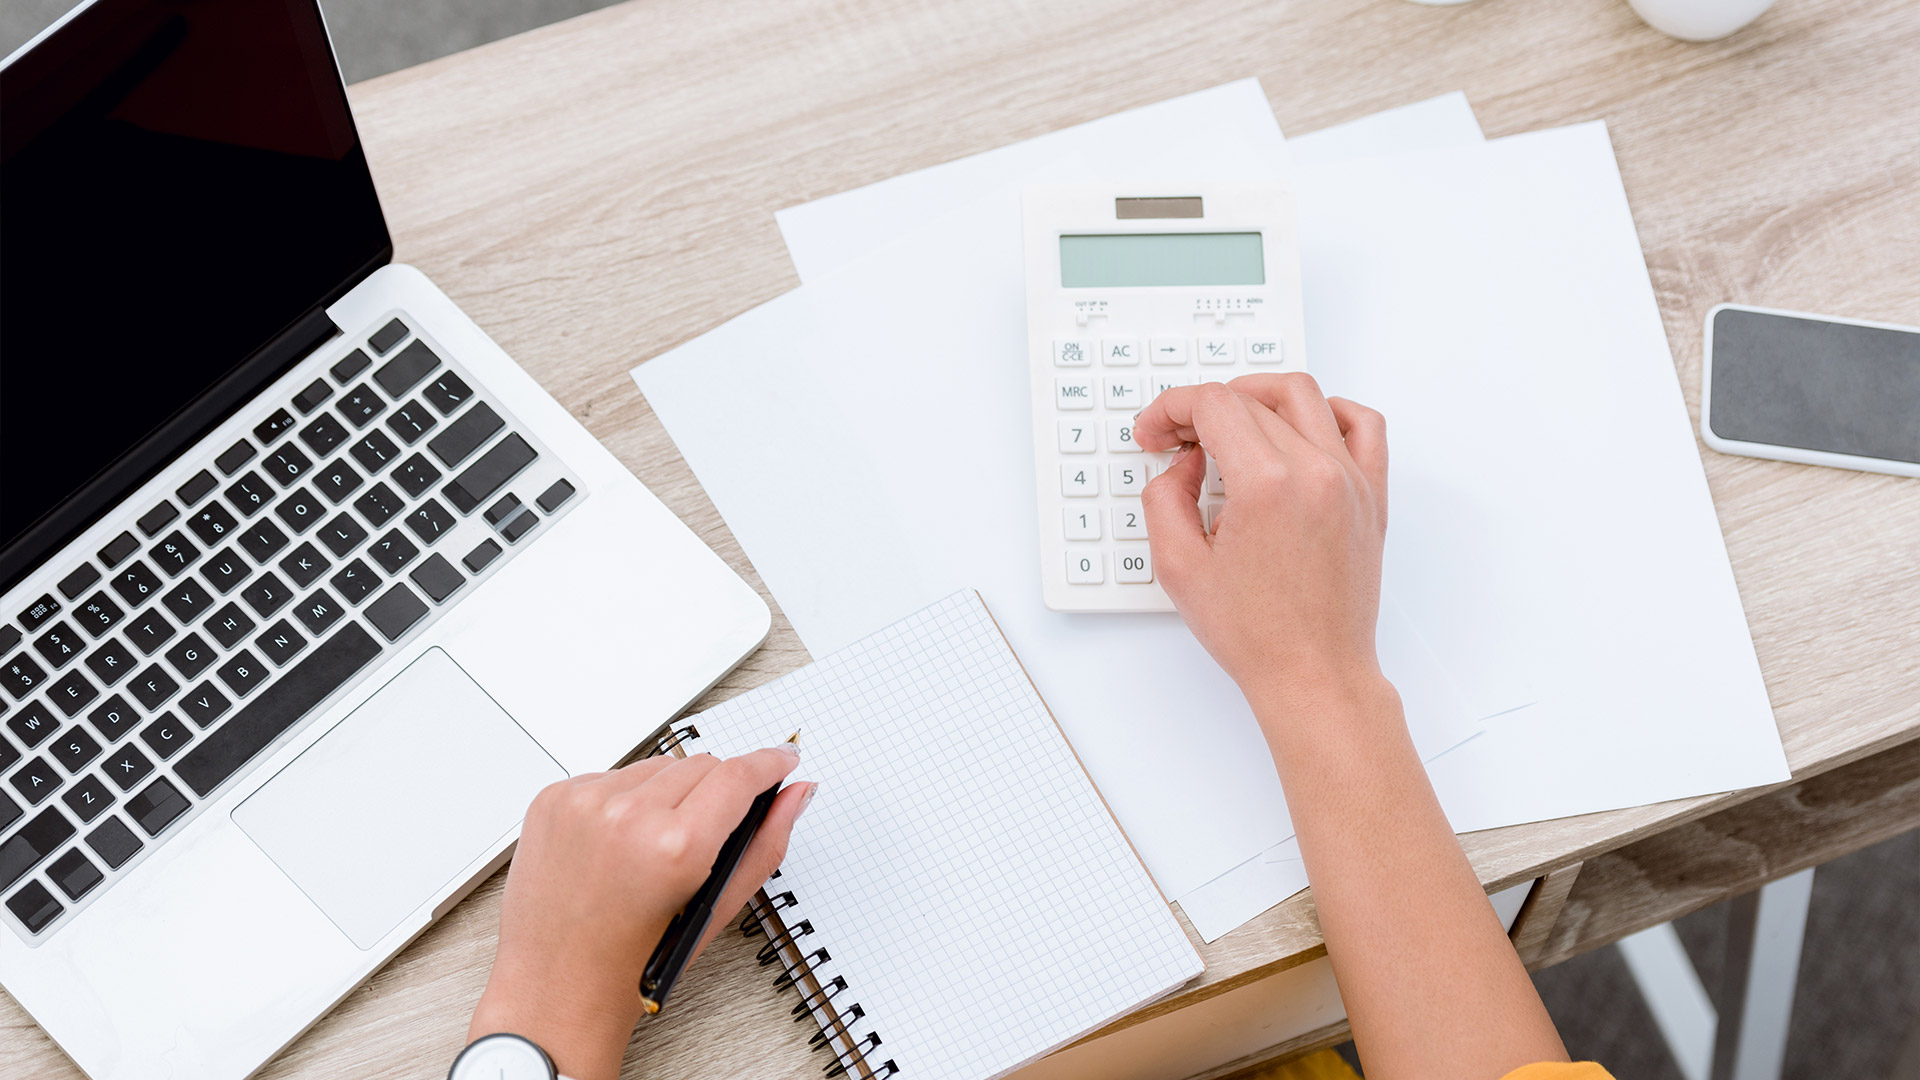 Four ways to get rid of PMI | Mortgage Rates, Mortgage News and Strategy